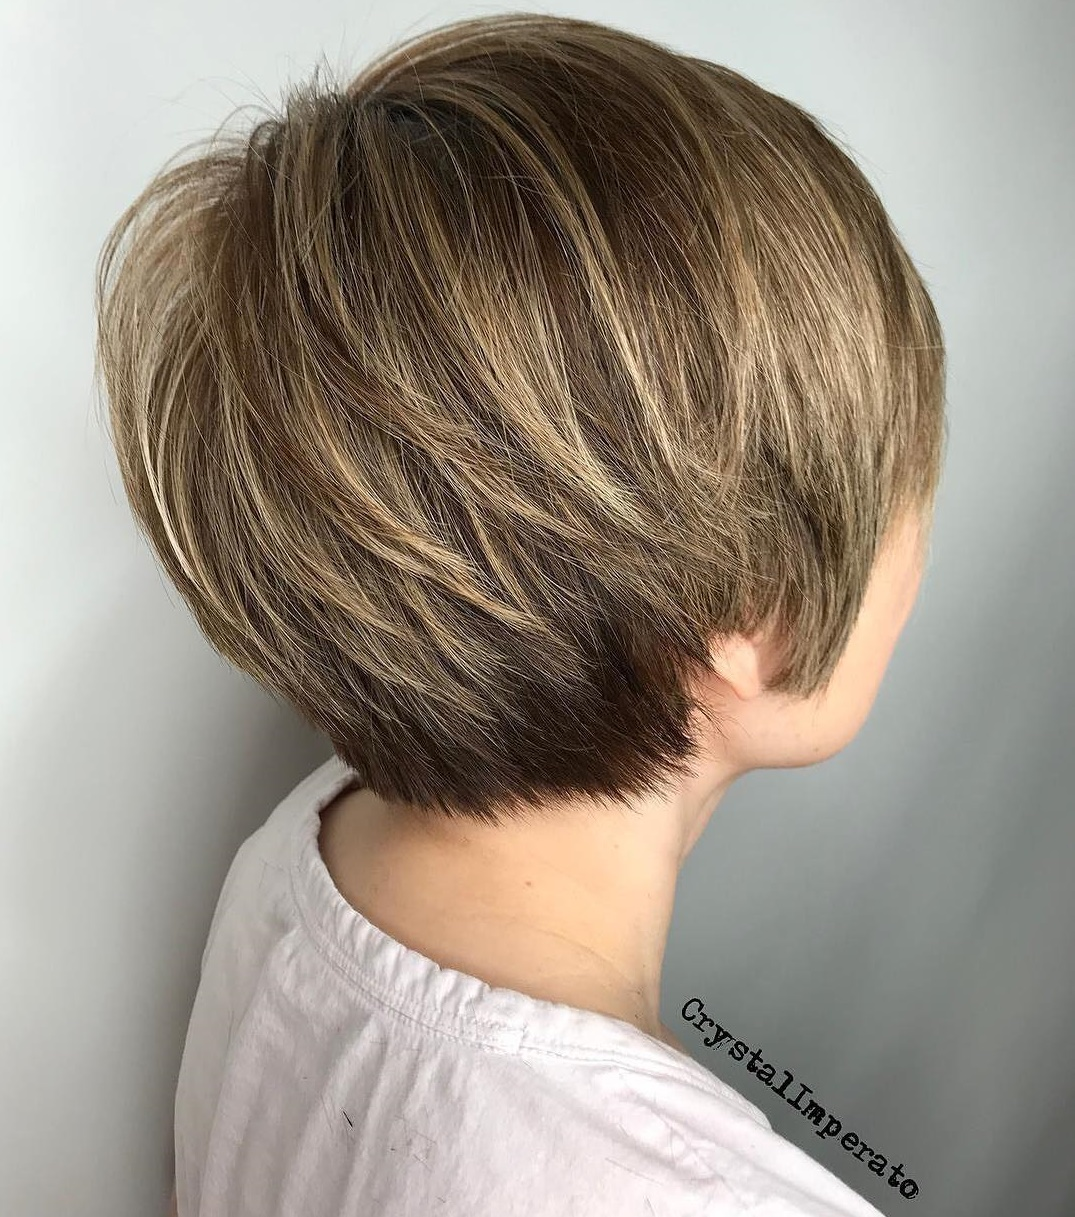 The super short, cropped pixie. 50 Hottest Pixie Cut Hairstyles To Spice Up Your Looks For 2021